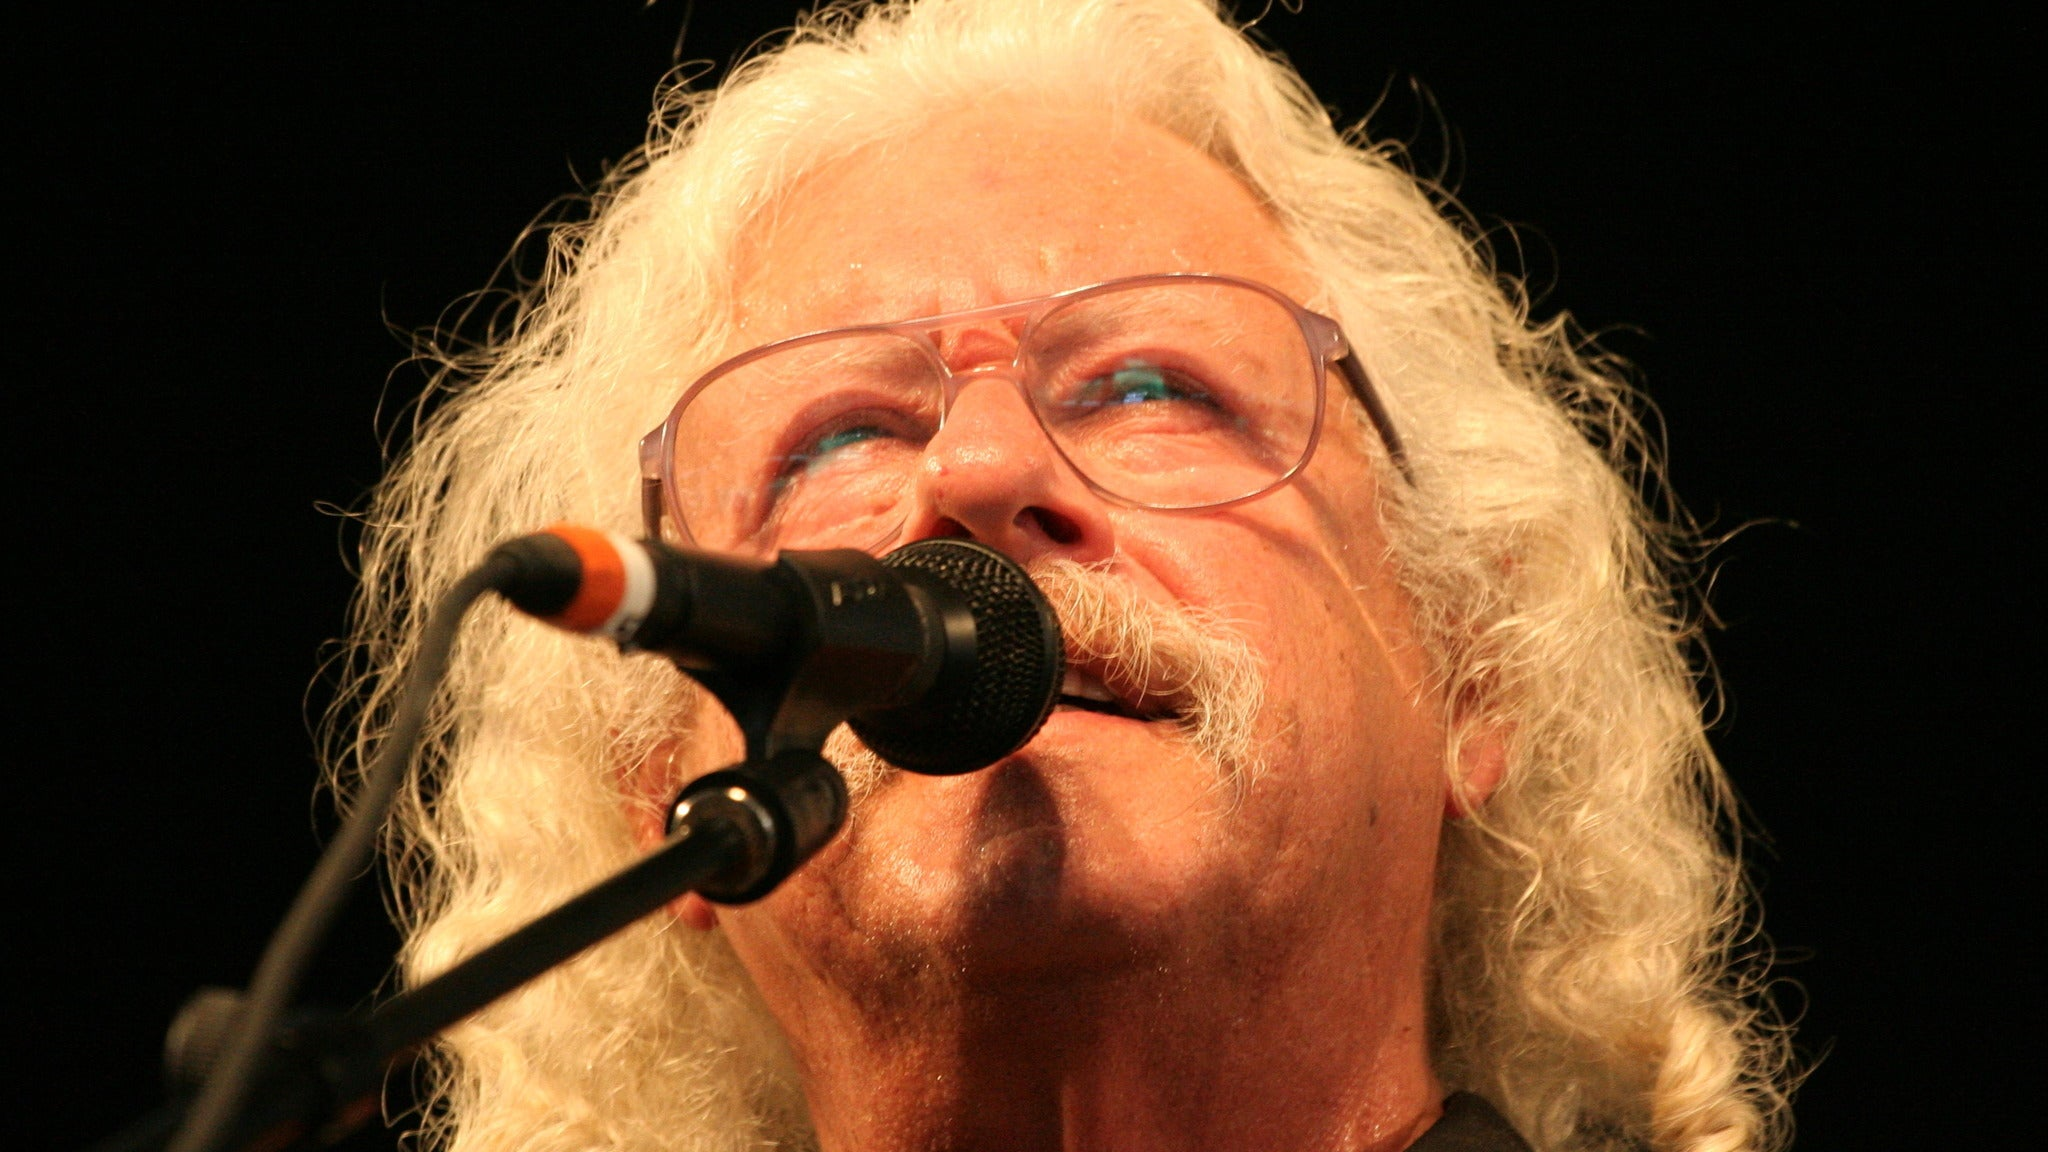 Arlo Guthrie at King Performing Arts Center